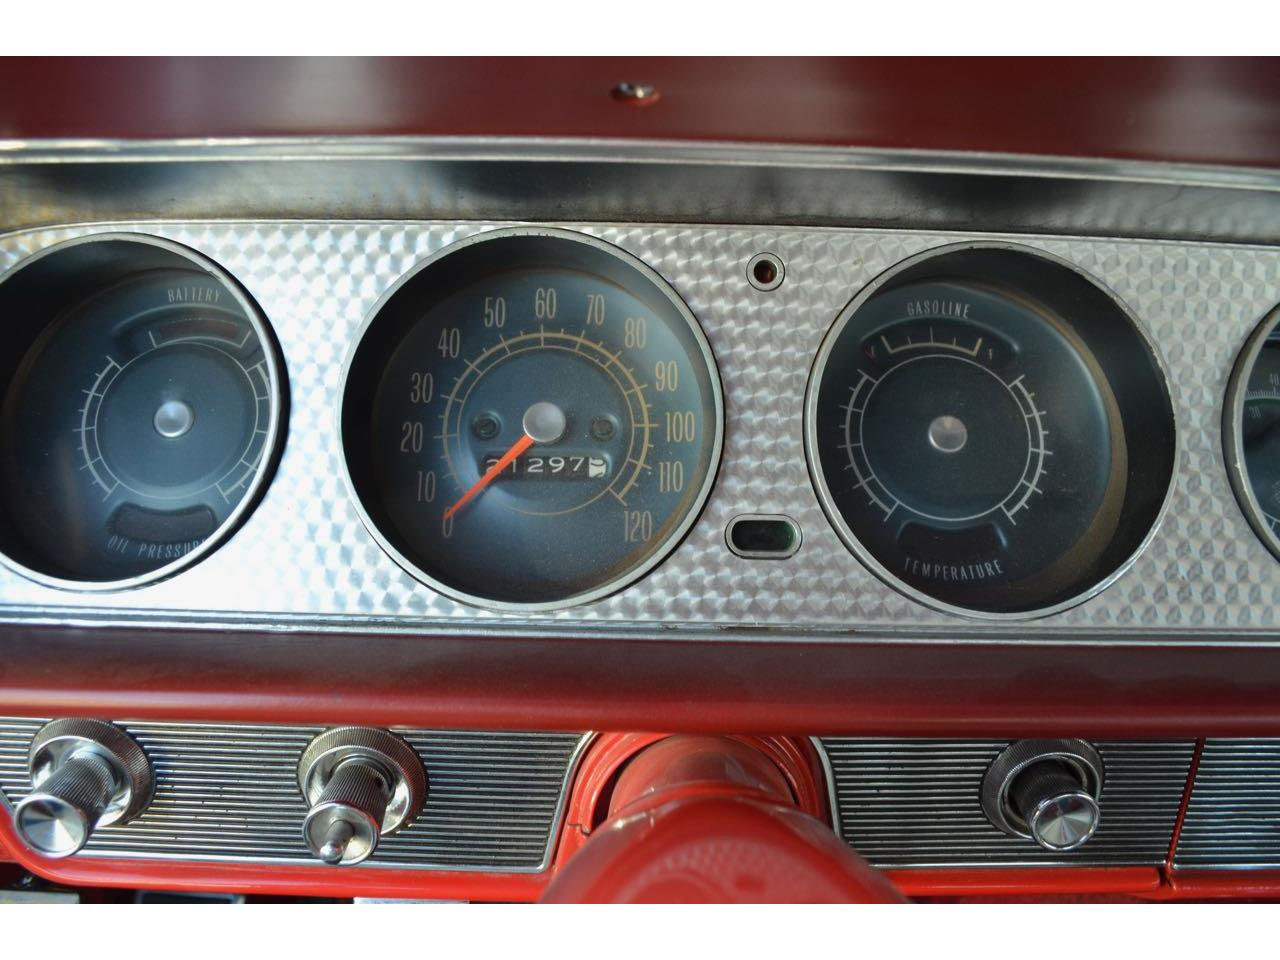 Large Picture of 1964 Pontiac LeMans located in Santa Ynez California - $49,500.00 Offered by Spoke Motors - KK9E